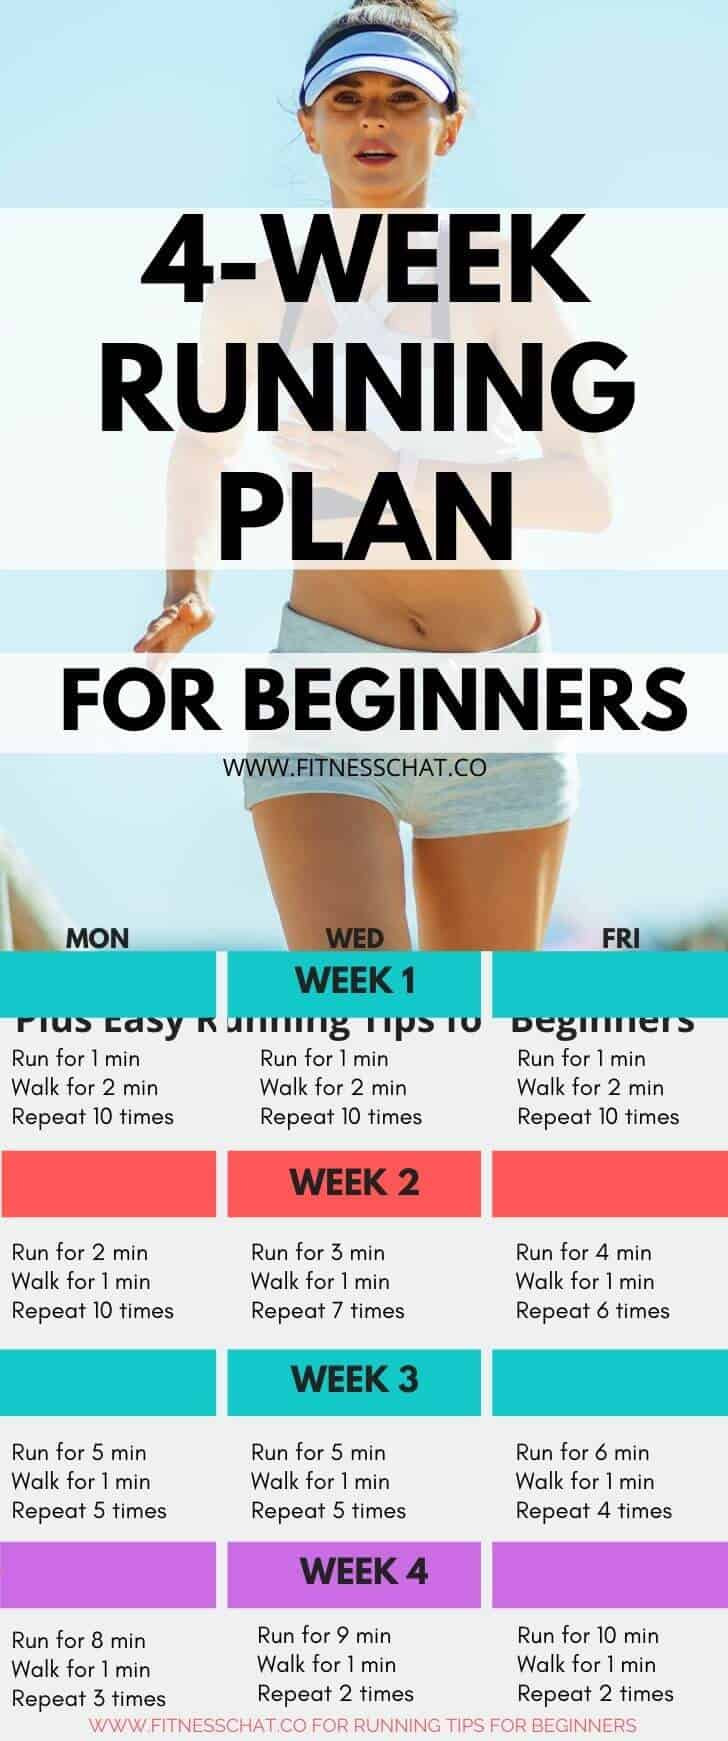 Running for beginners to lose weight. 4 week running plan for beginners plus 8 easy running tips for beginners to become runners